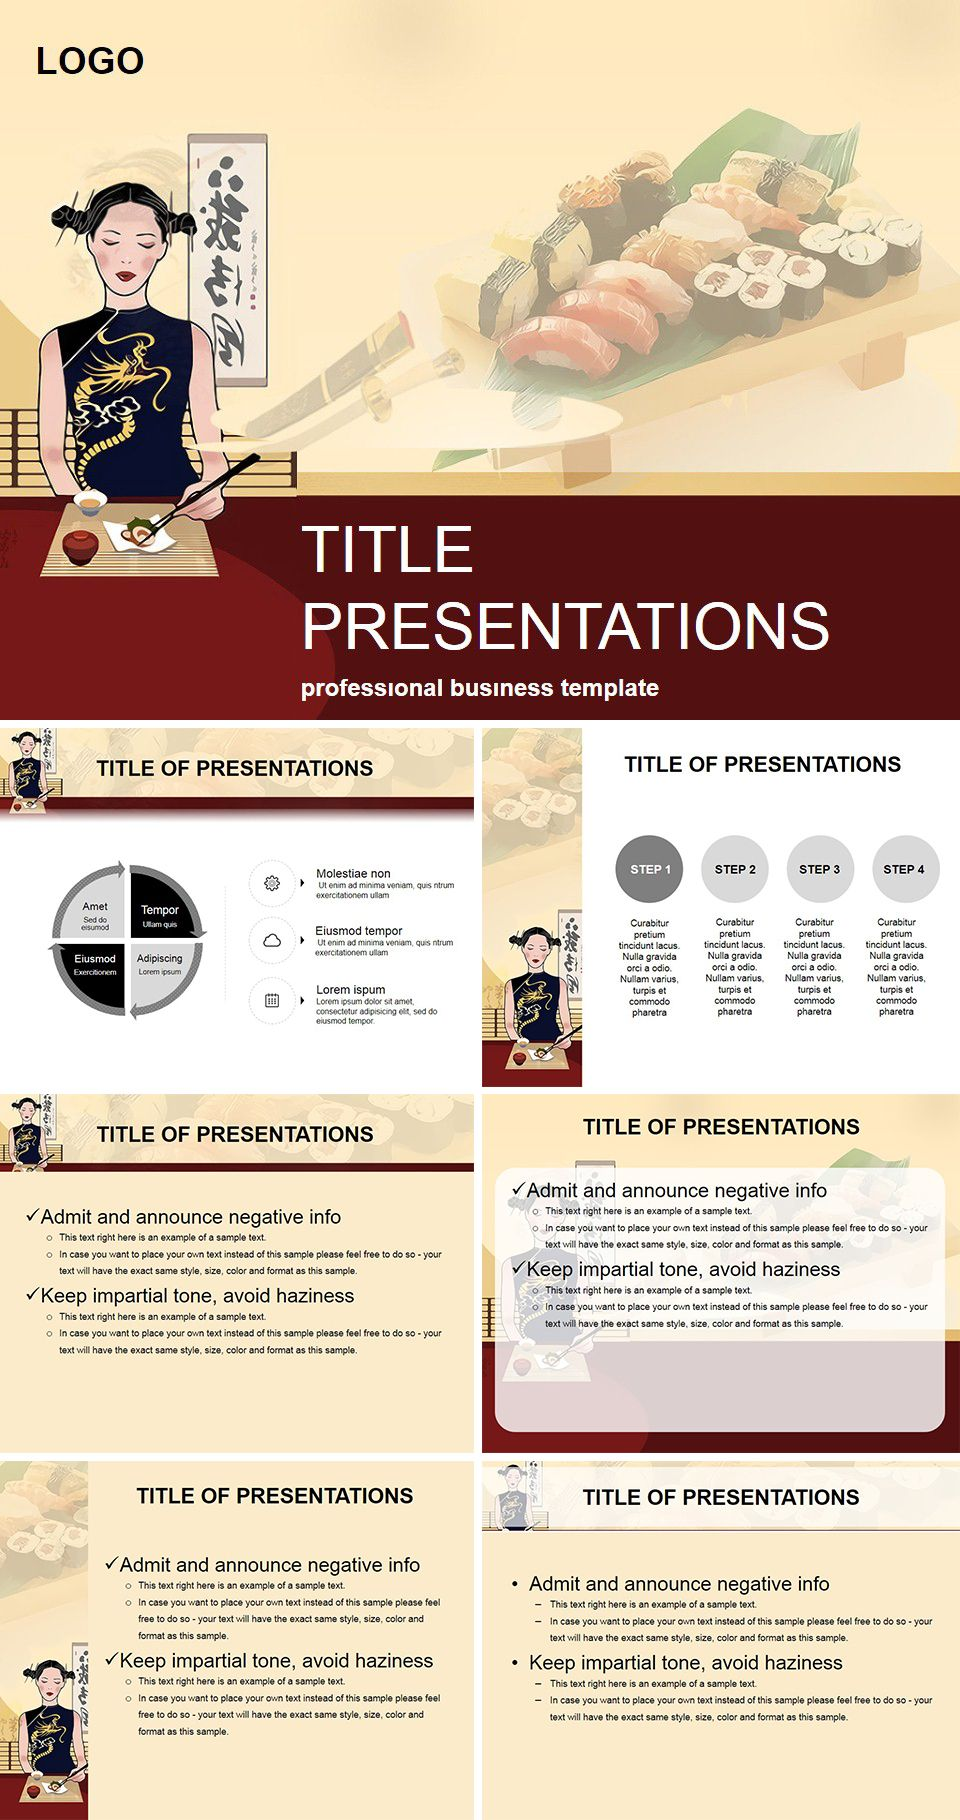 Sushi restaurant powerpoint templates sushi restaurants and template sushi restaurant powerpoint templates toneelgroepblik Images